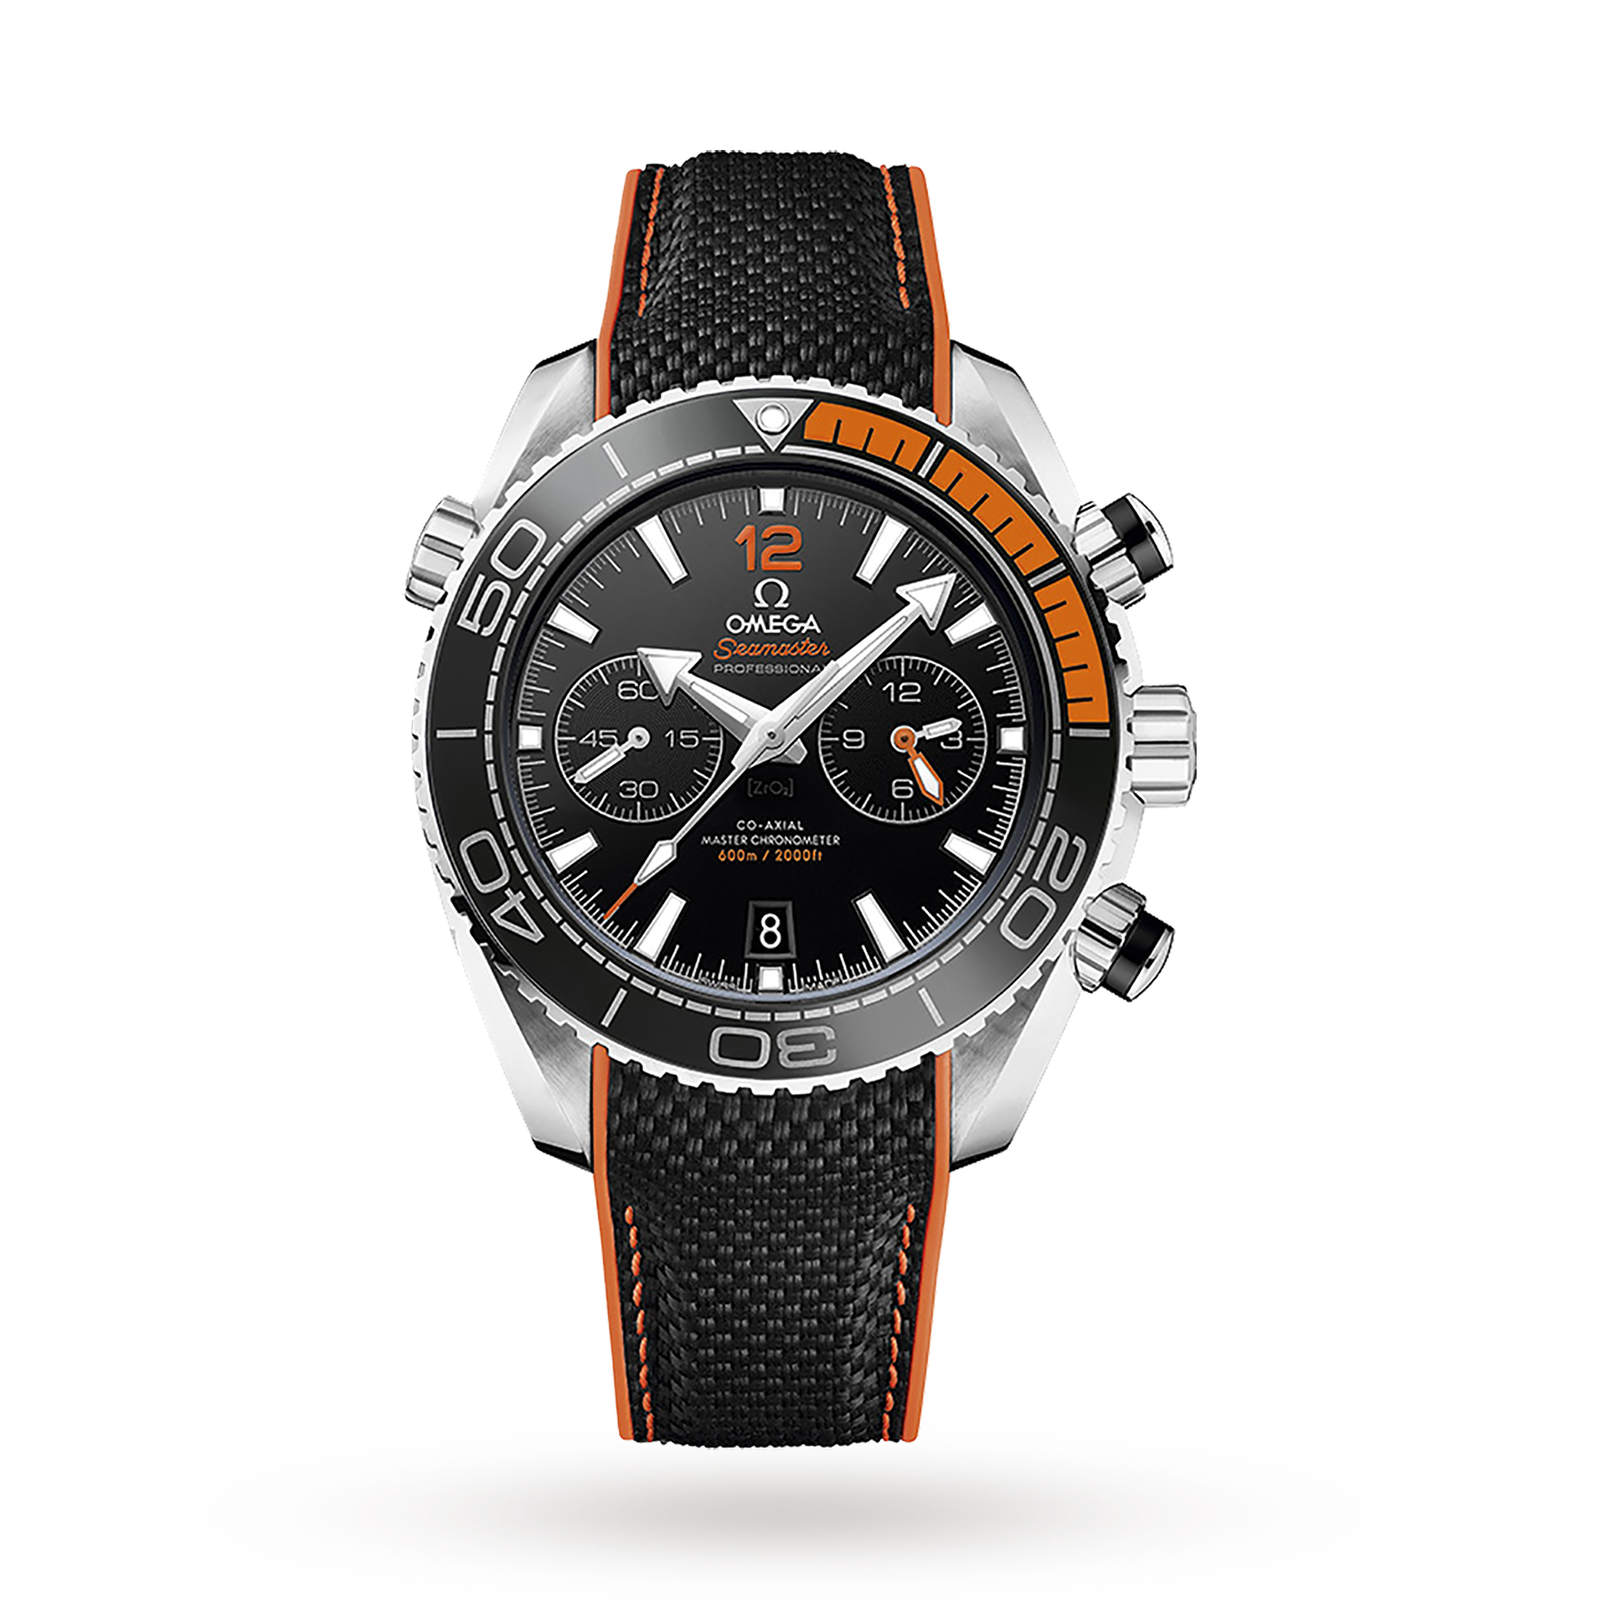 omega edit zs seamaster chronograph watches ocean planet